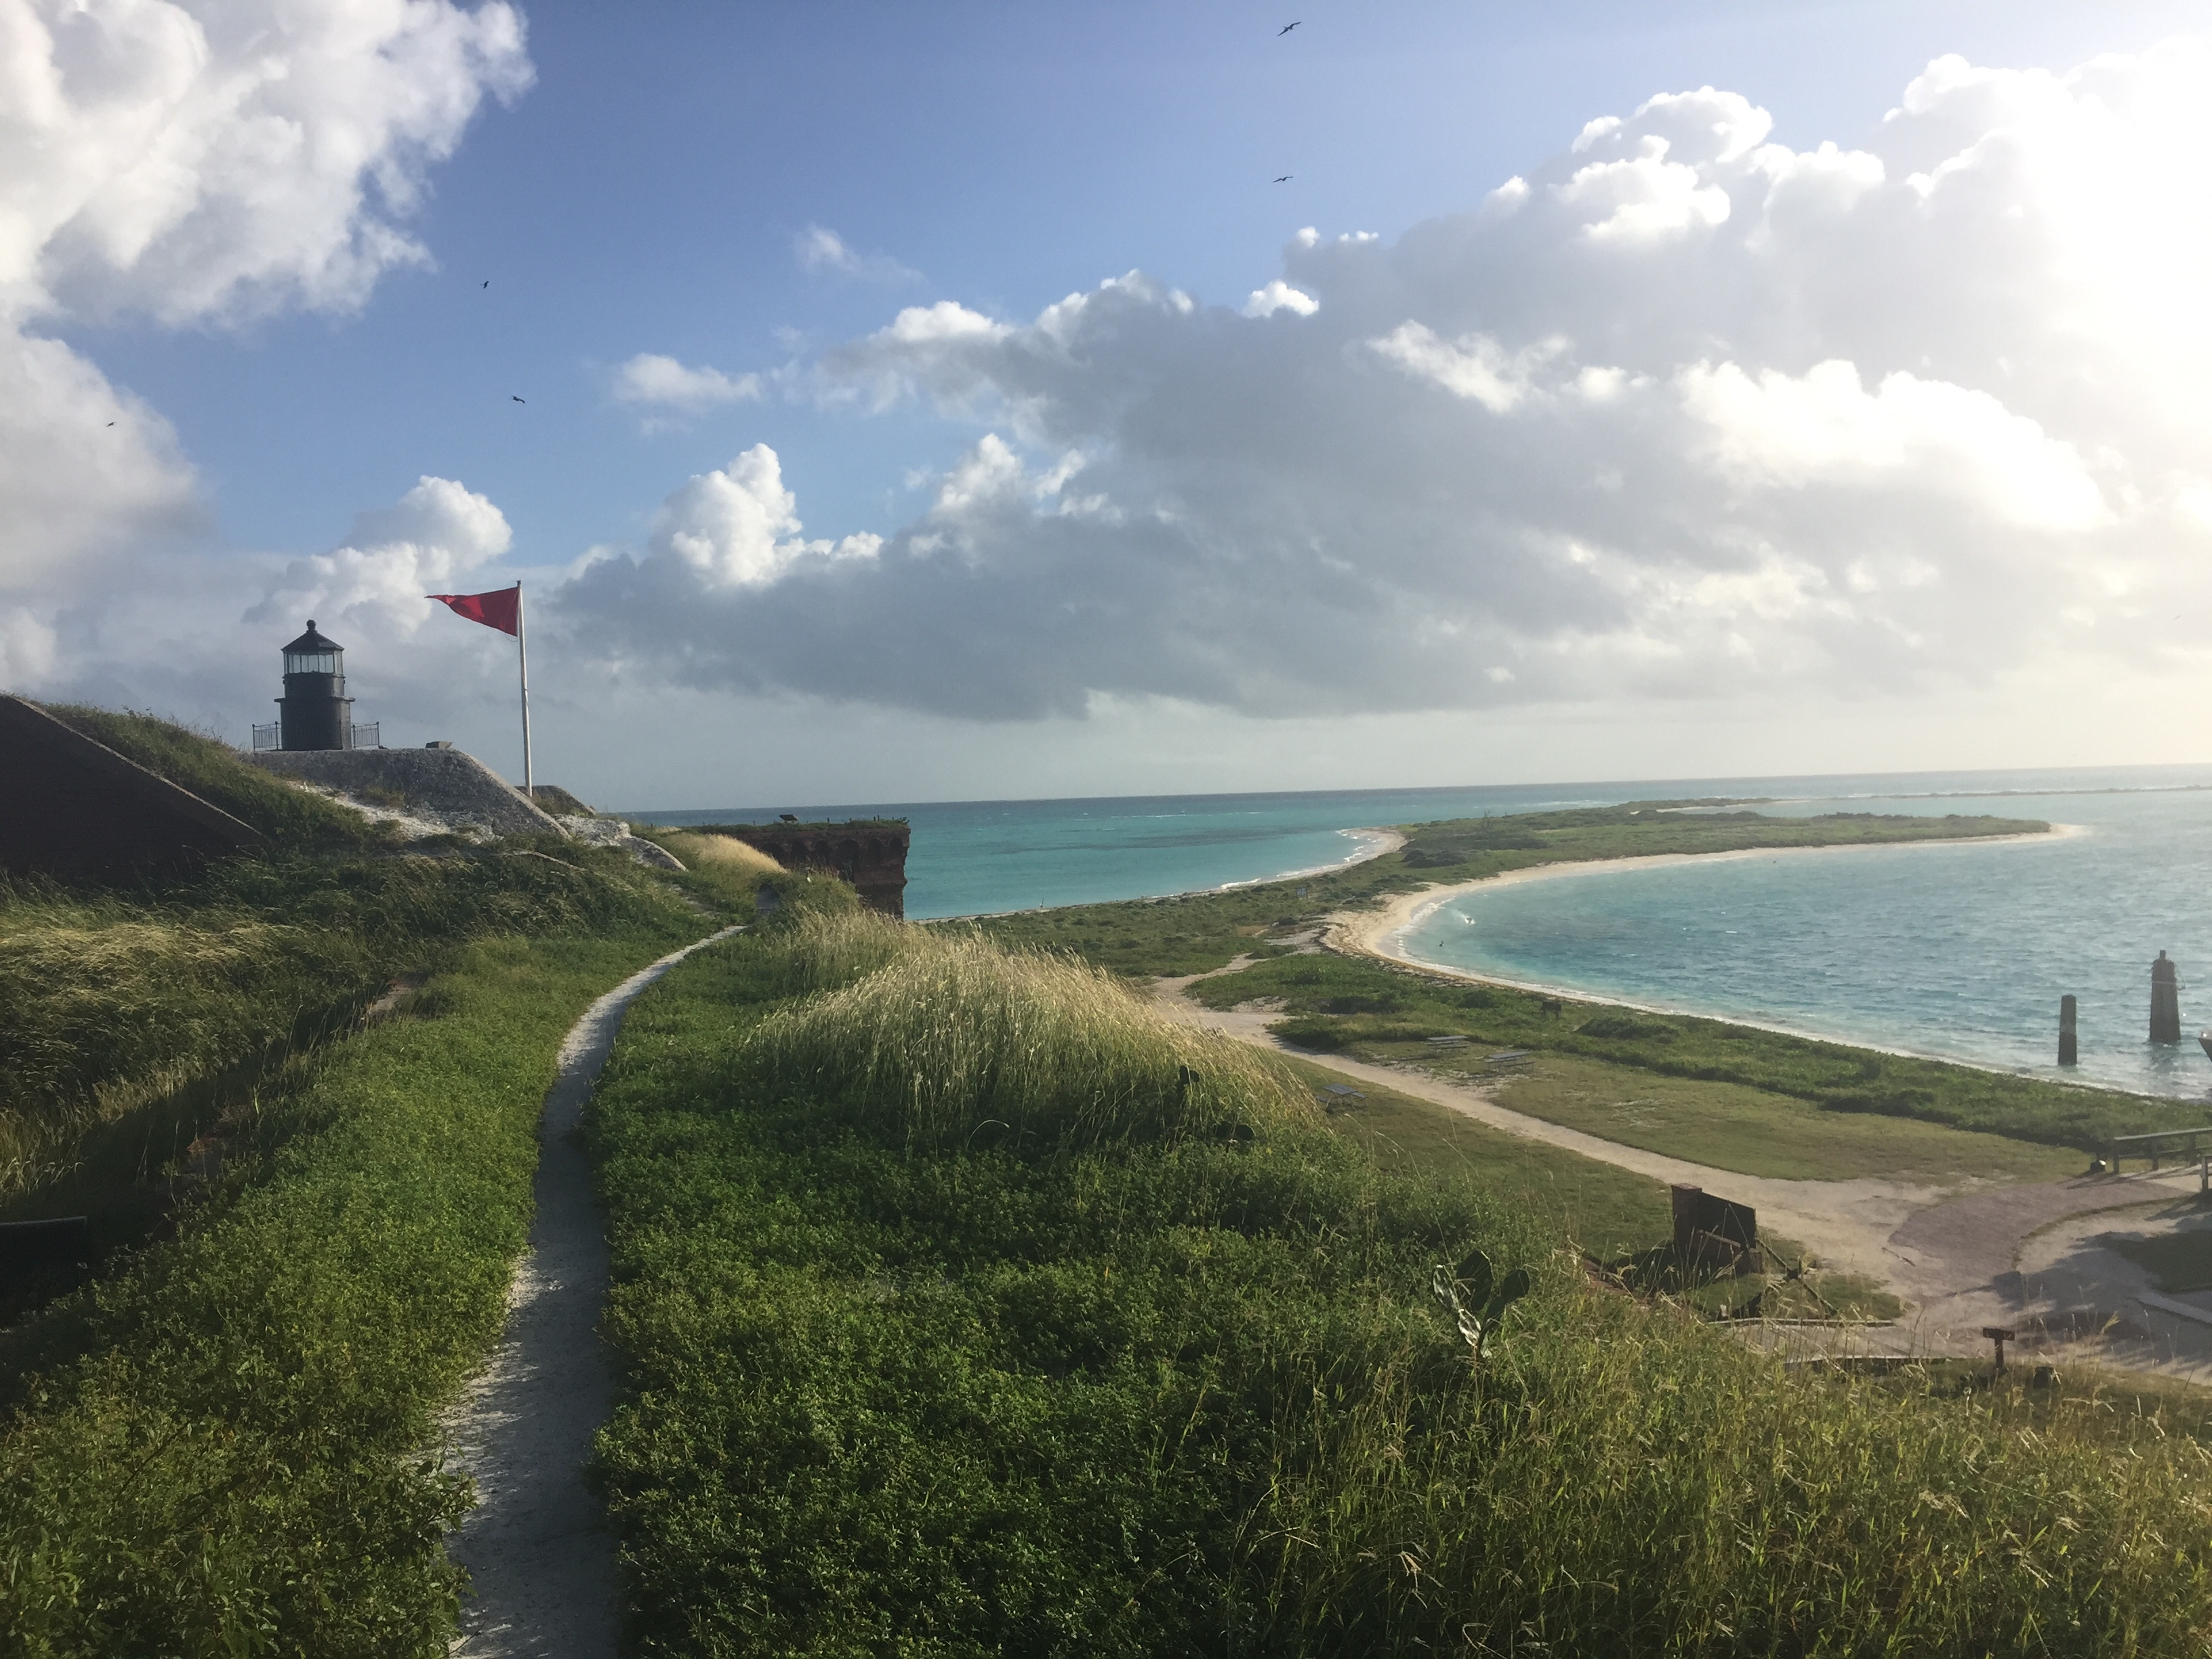 The Cost of Exclusivity at Dry Tortugas National Park